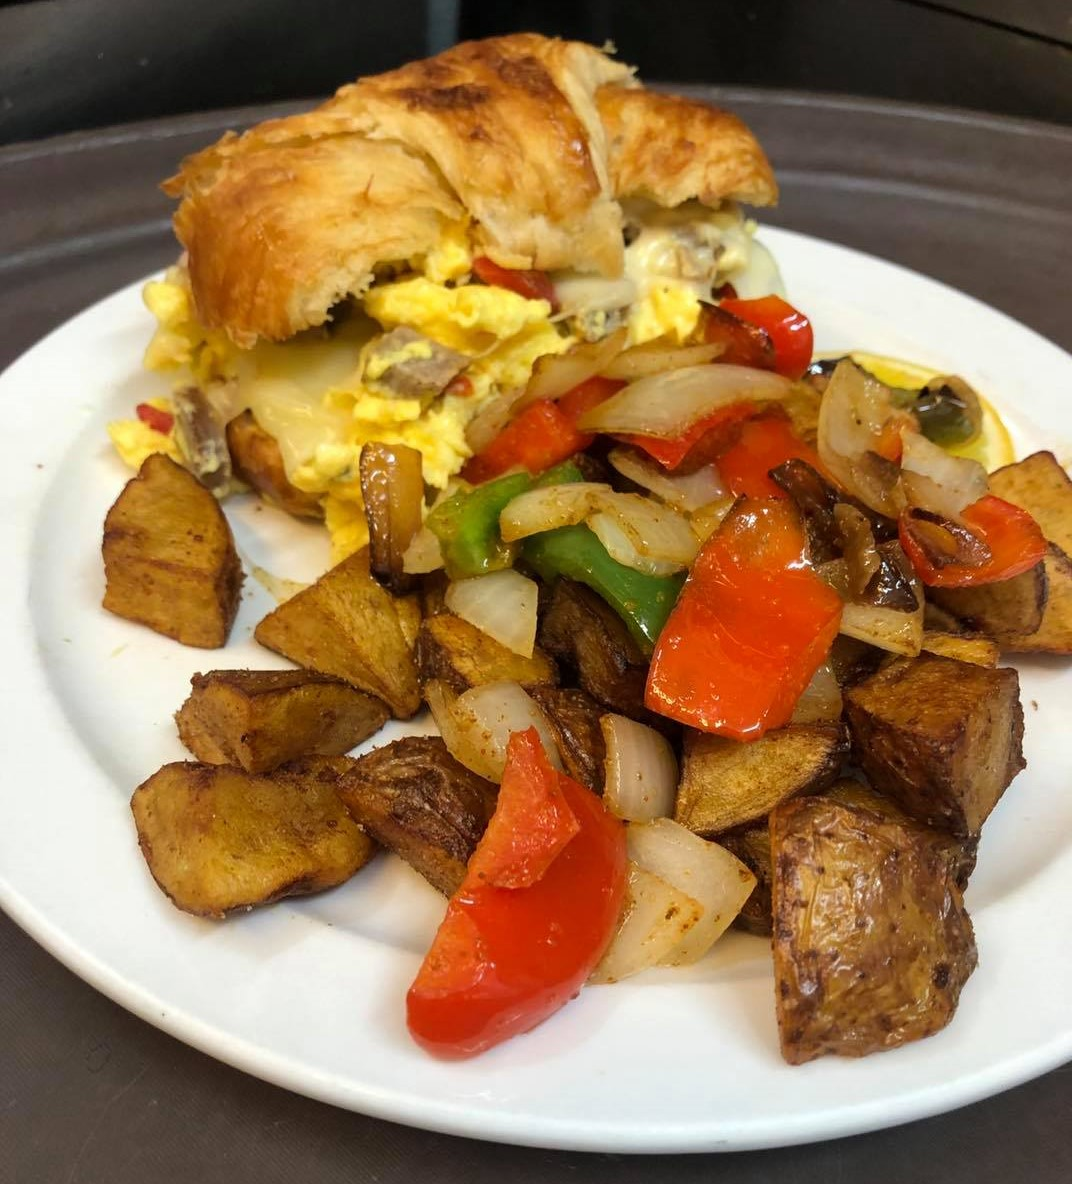 egg sandwich on a croissant with a side of home fries and roasted peppers